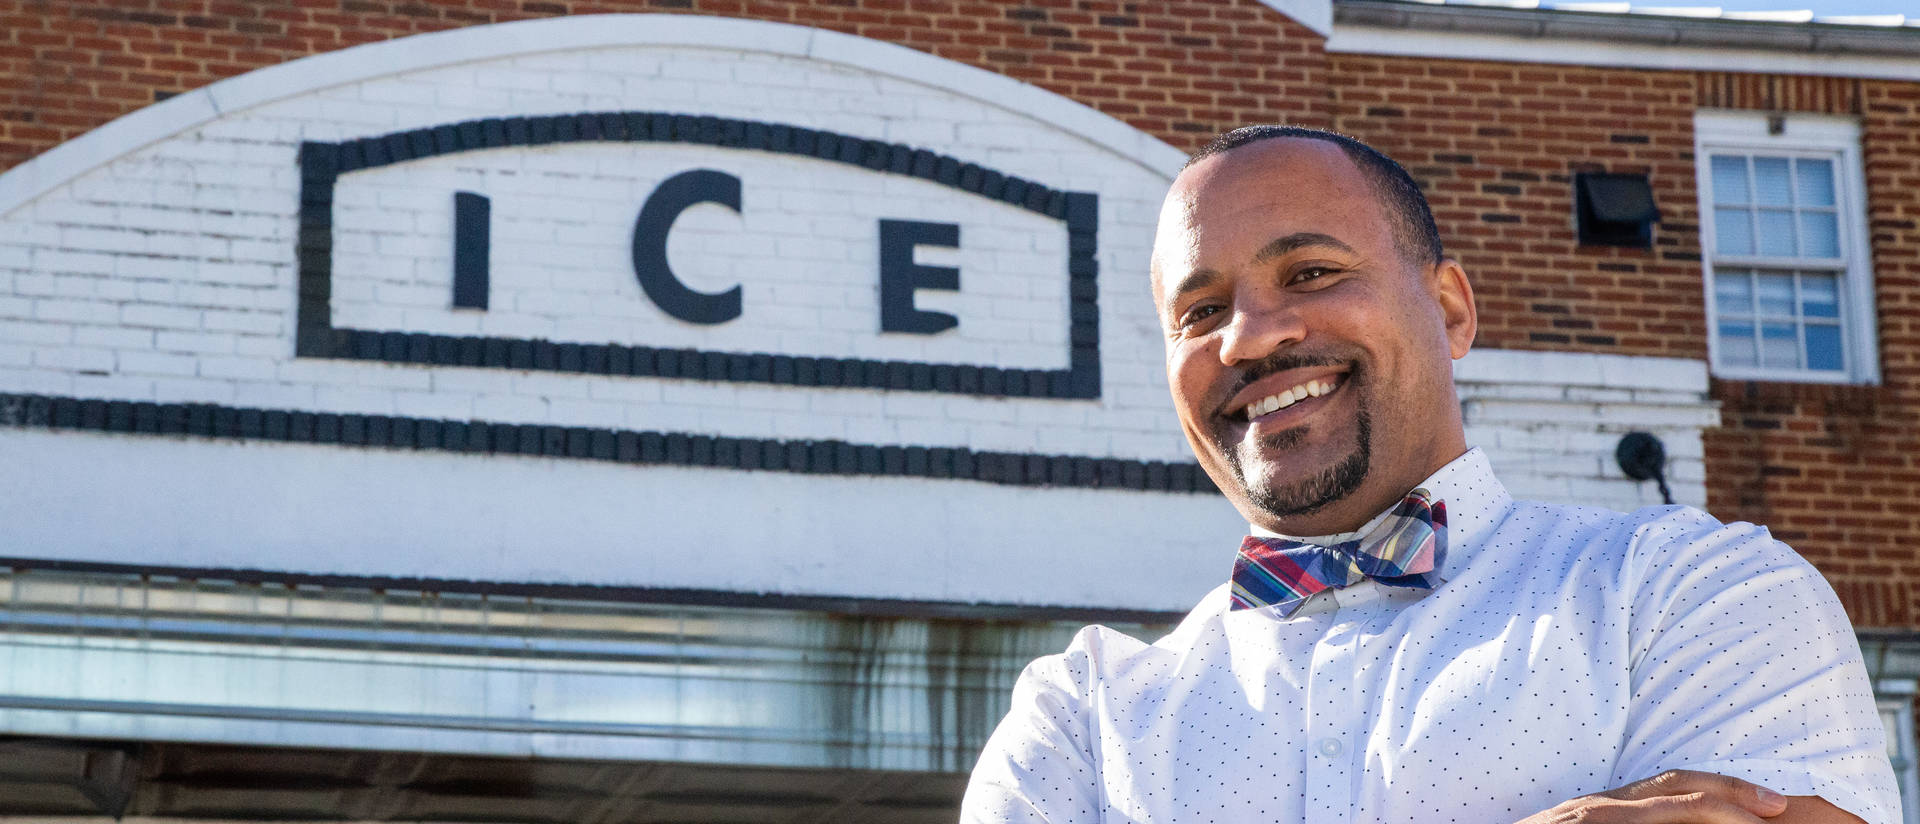 Brandon Byrd, who launched his food truck eight years ago in Washington, D.C., soon will open his first storefront in a historic building in Virginia. (Photo credit: Misha Enriquez for Visit Alexandria)